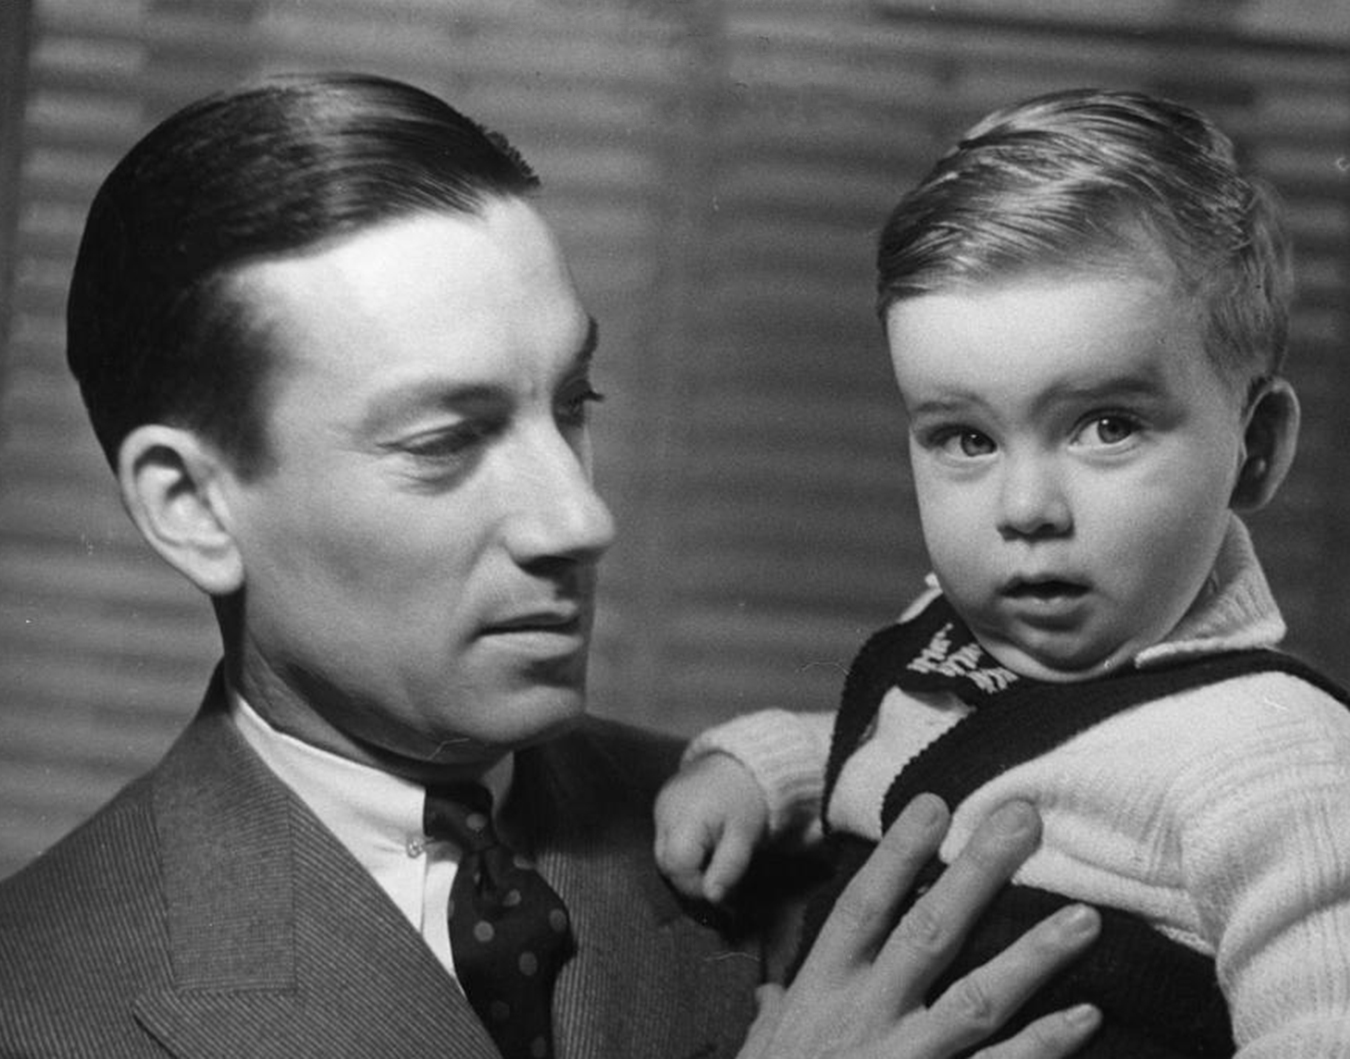 "Hoagy Carmichael holds son Hoagy Bix in the early 1940s. More recently, Hoagy Bix was in town for IU Theatre's production of ""Stardust Road: A Hoagy Carmichael Musical Journey,"" and he talked with writer Michael G. Glab about growing up in Hollywood, his famous namesakes (Hoagy and Bix), and the musical that is premiering in Bloomington. 